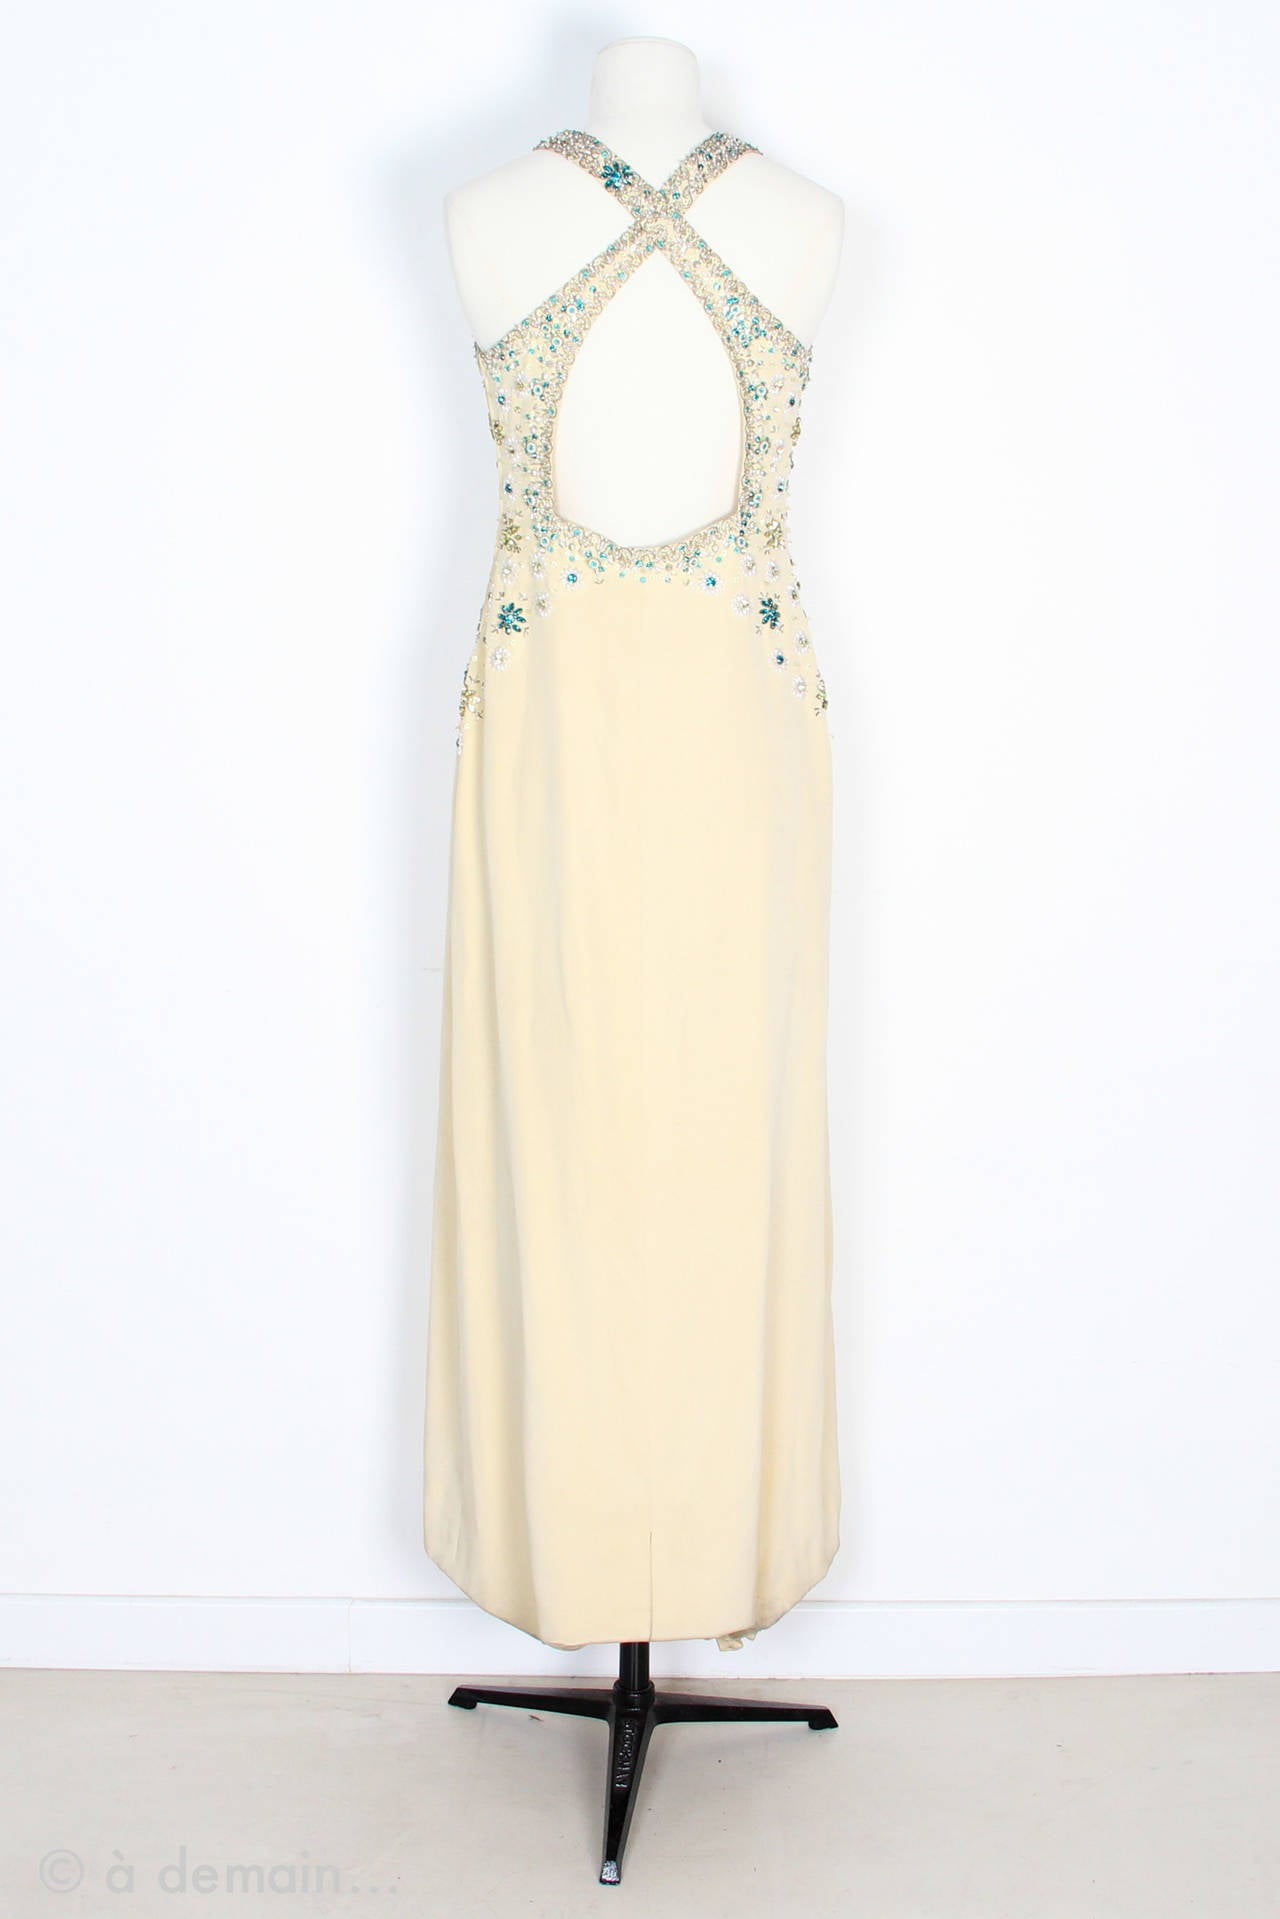 White 1963 Evening Dress designed by Marie Clouet and embroidered by Lesage For Sale